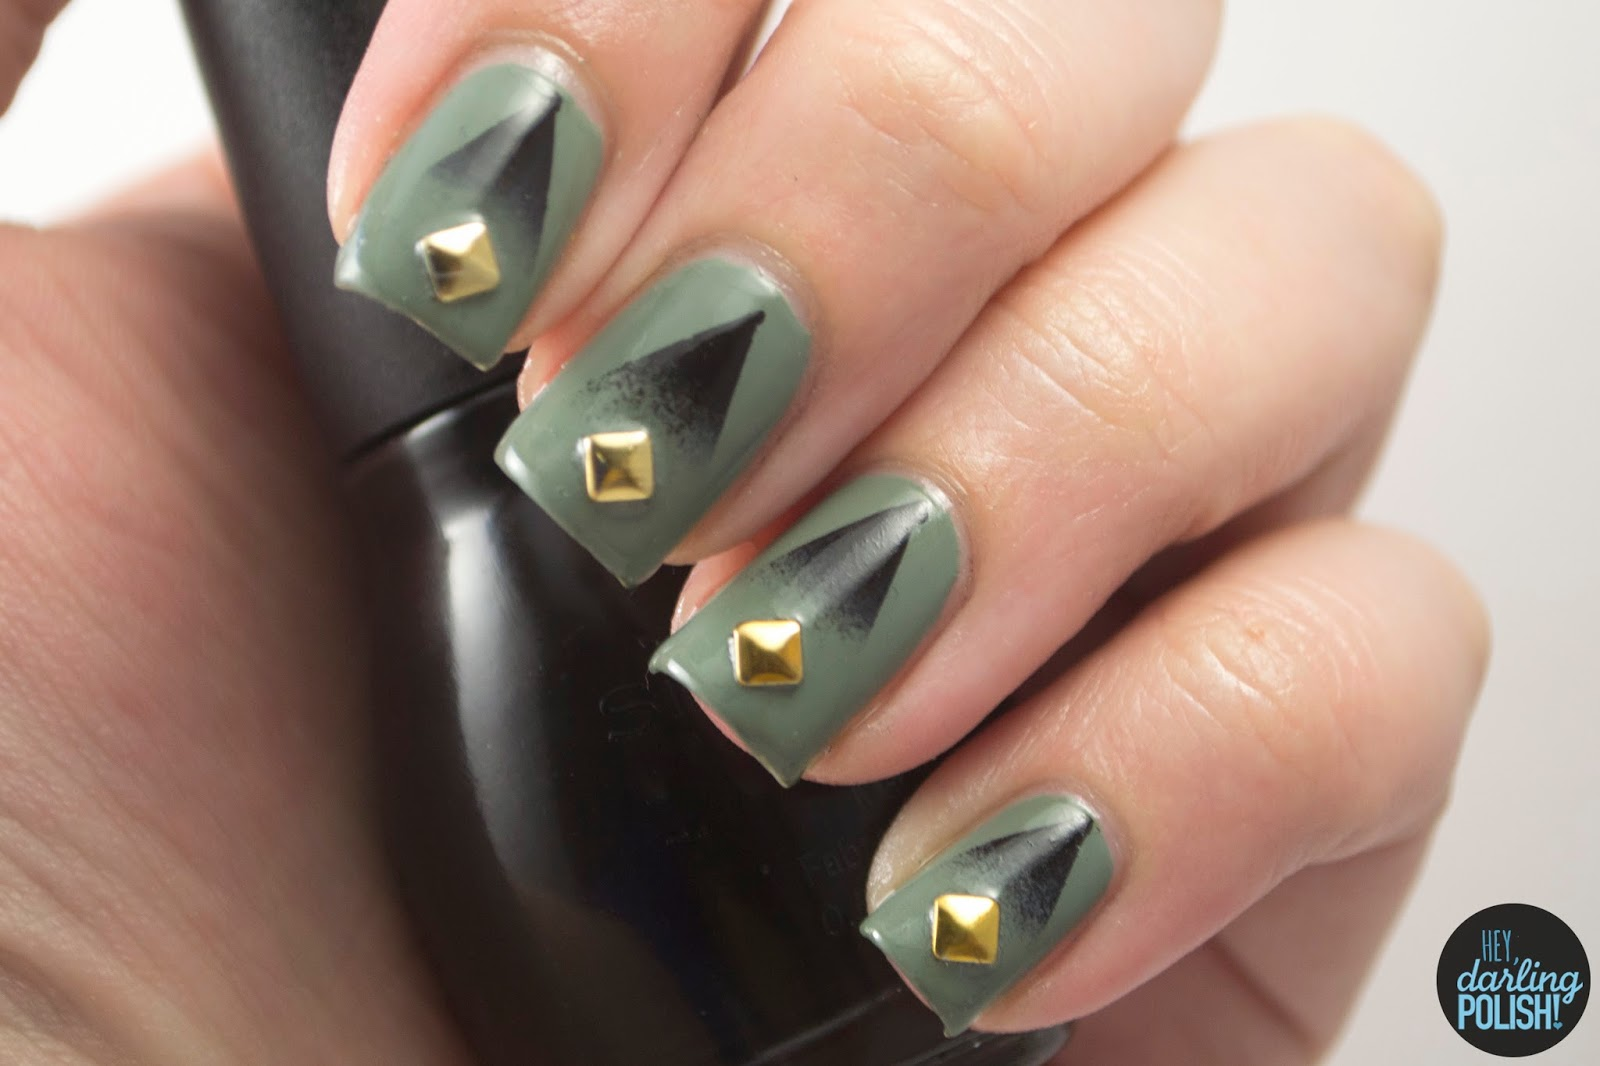 nails, nail art, nail polish, indie, indie polish, indie nail polish, boutique, hey darling polish, green, black, cult nails, gradients, studs